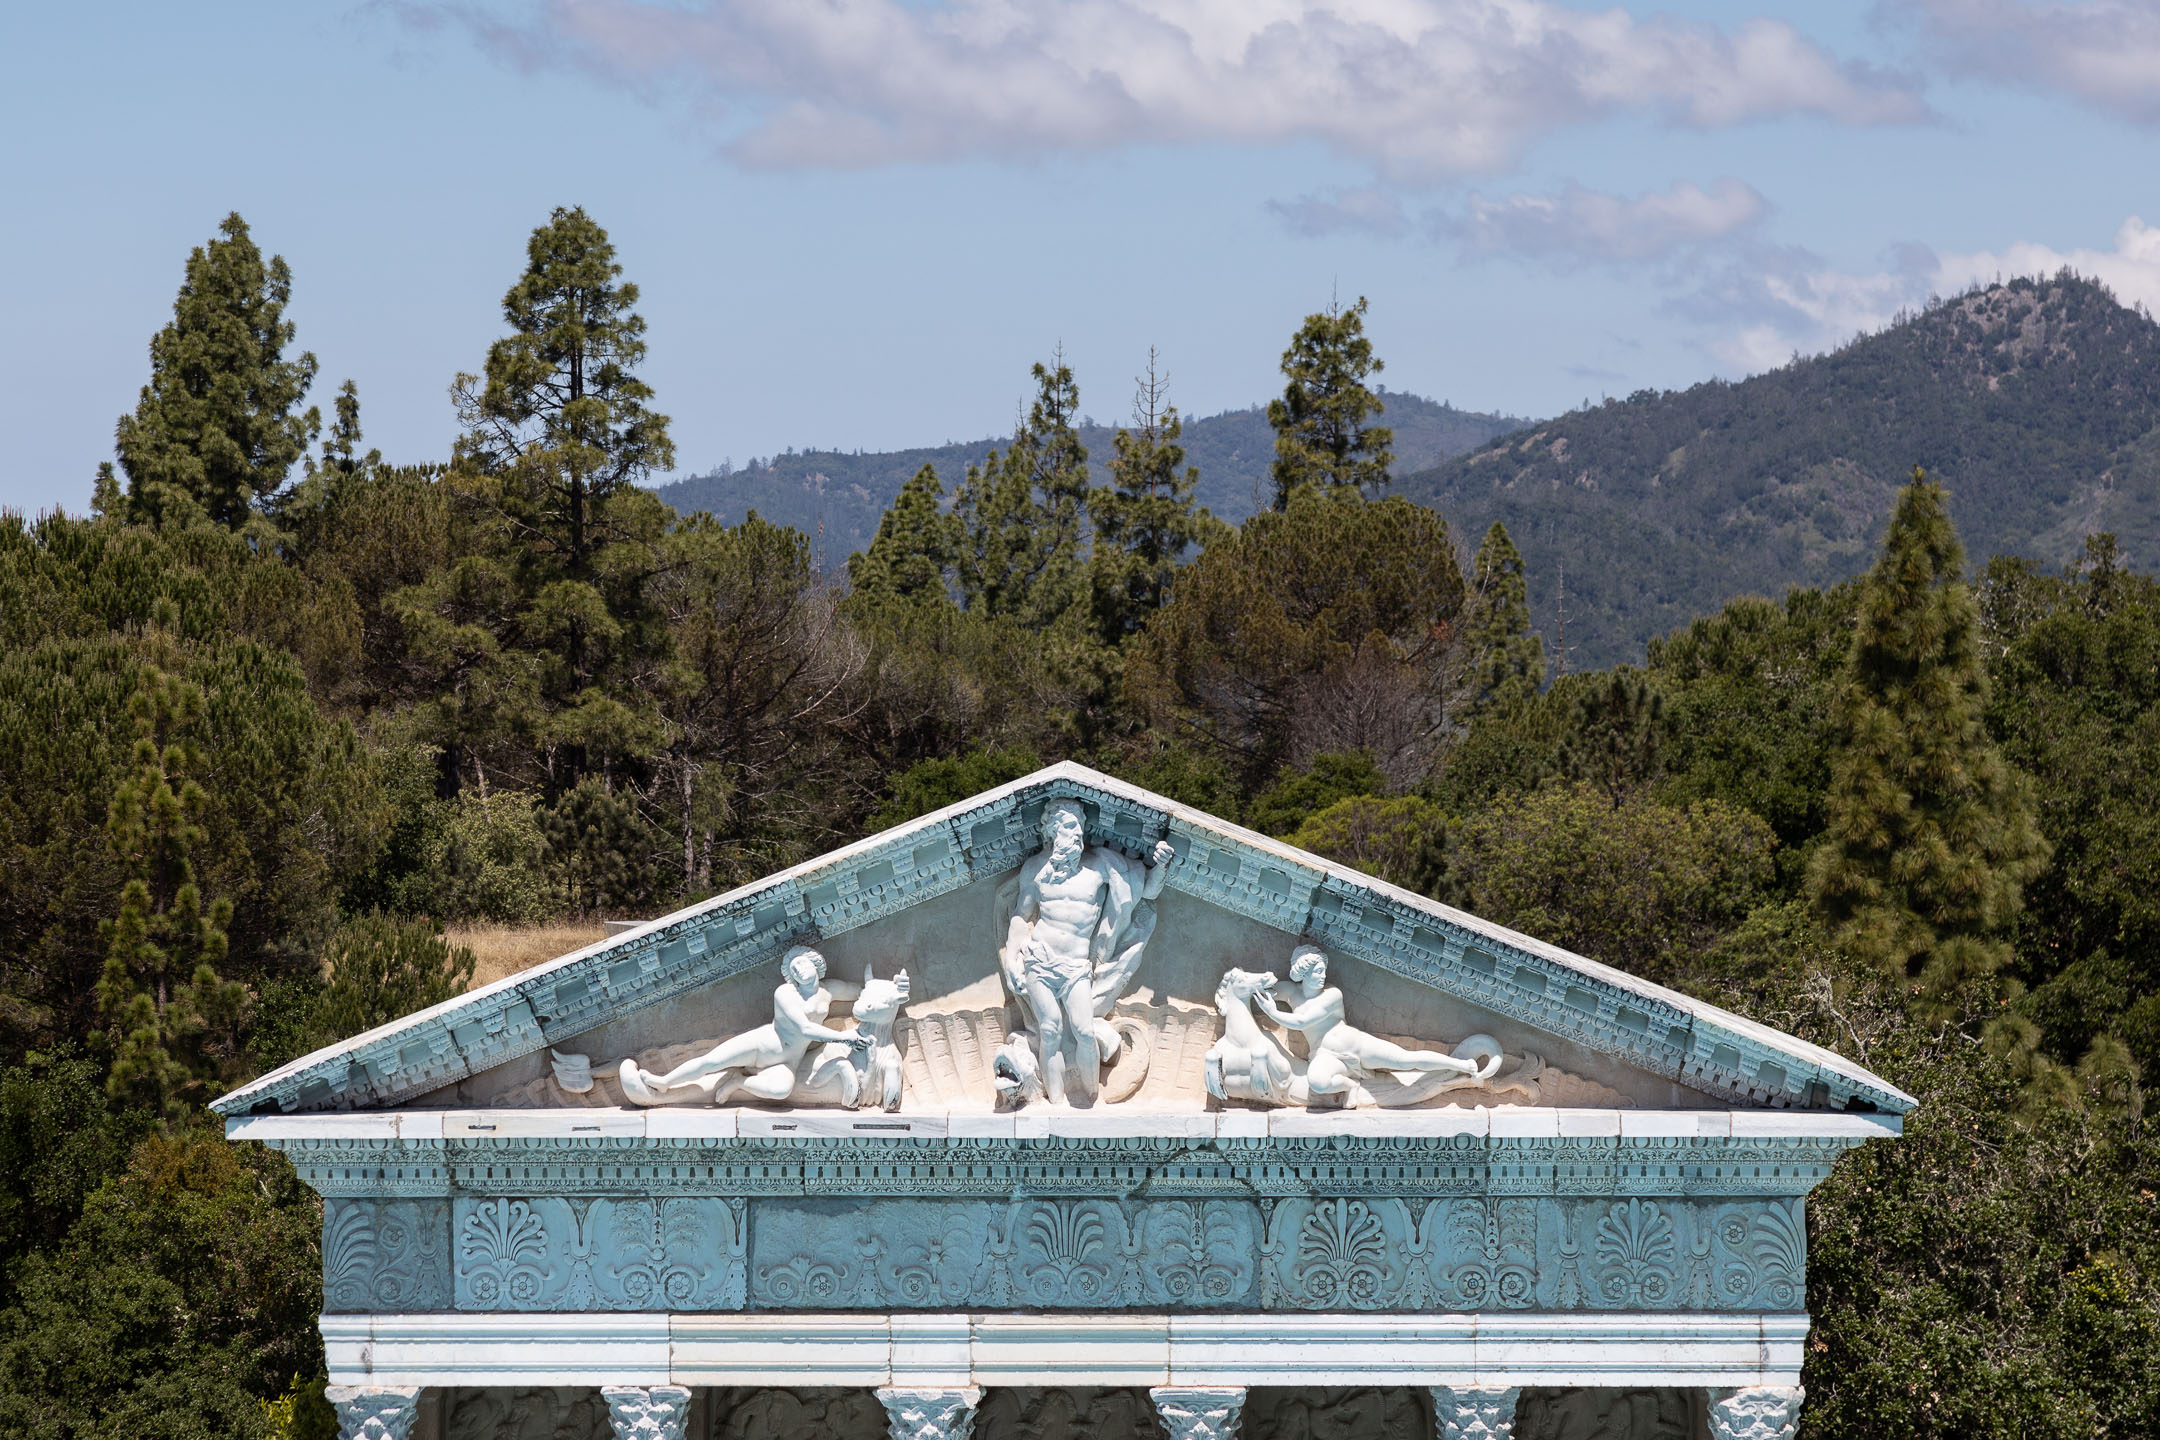 PoolHouseDetailHearstCastle5.24.19copy